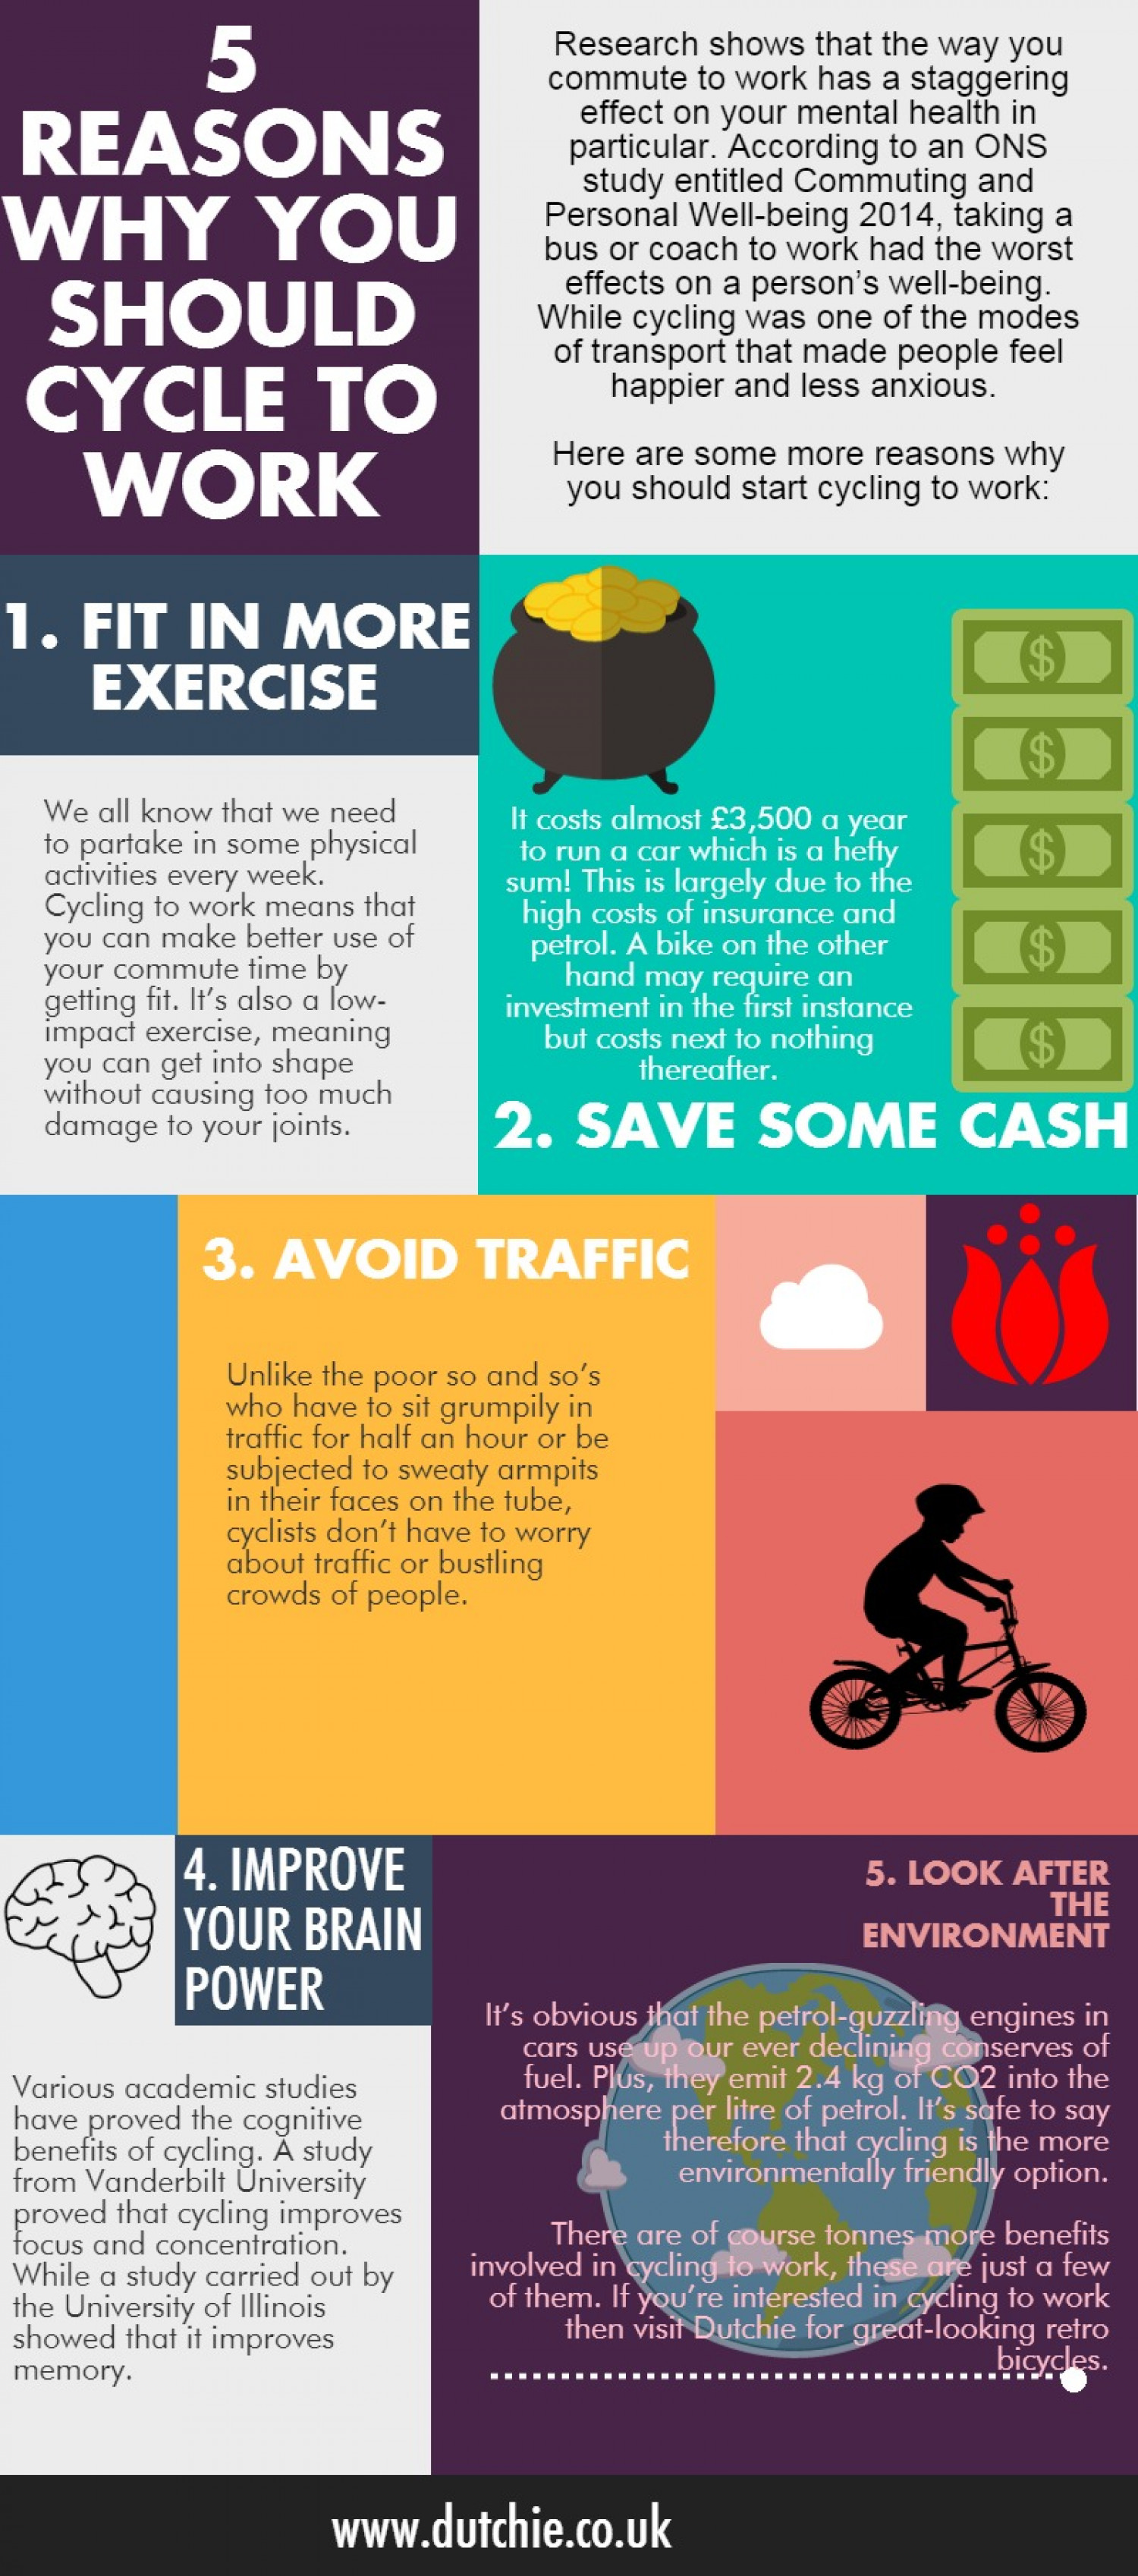 5 REASONS WHY YOU SHOULD CYCLE TO WORK Infographic